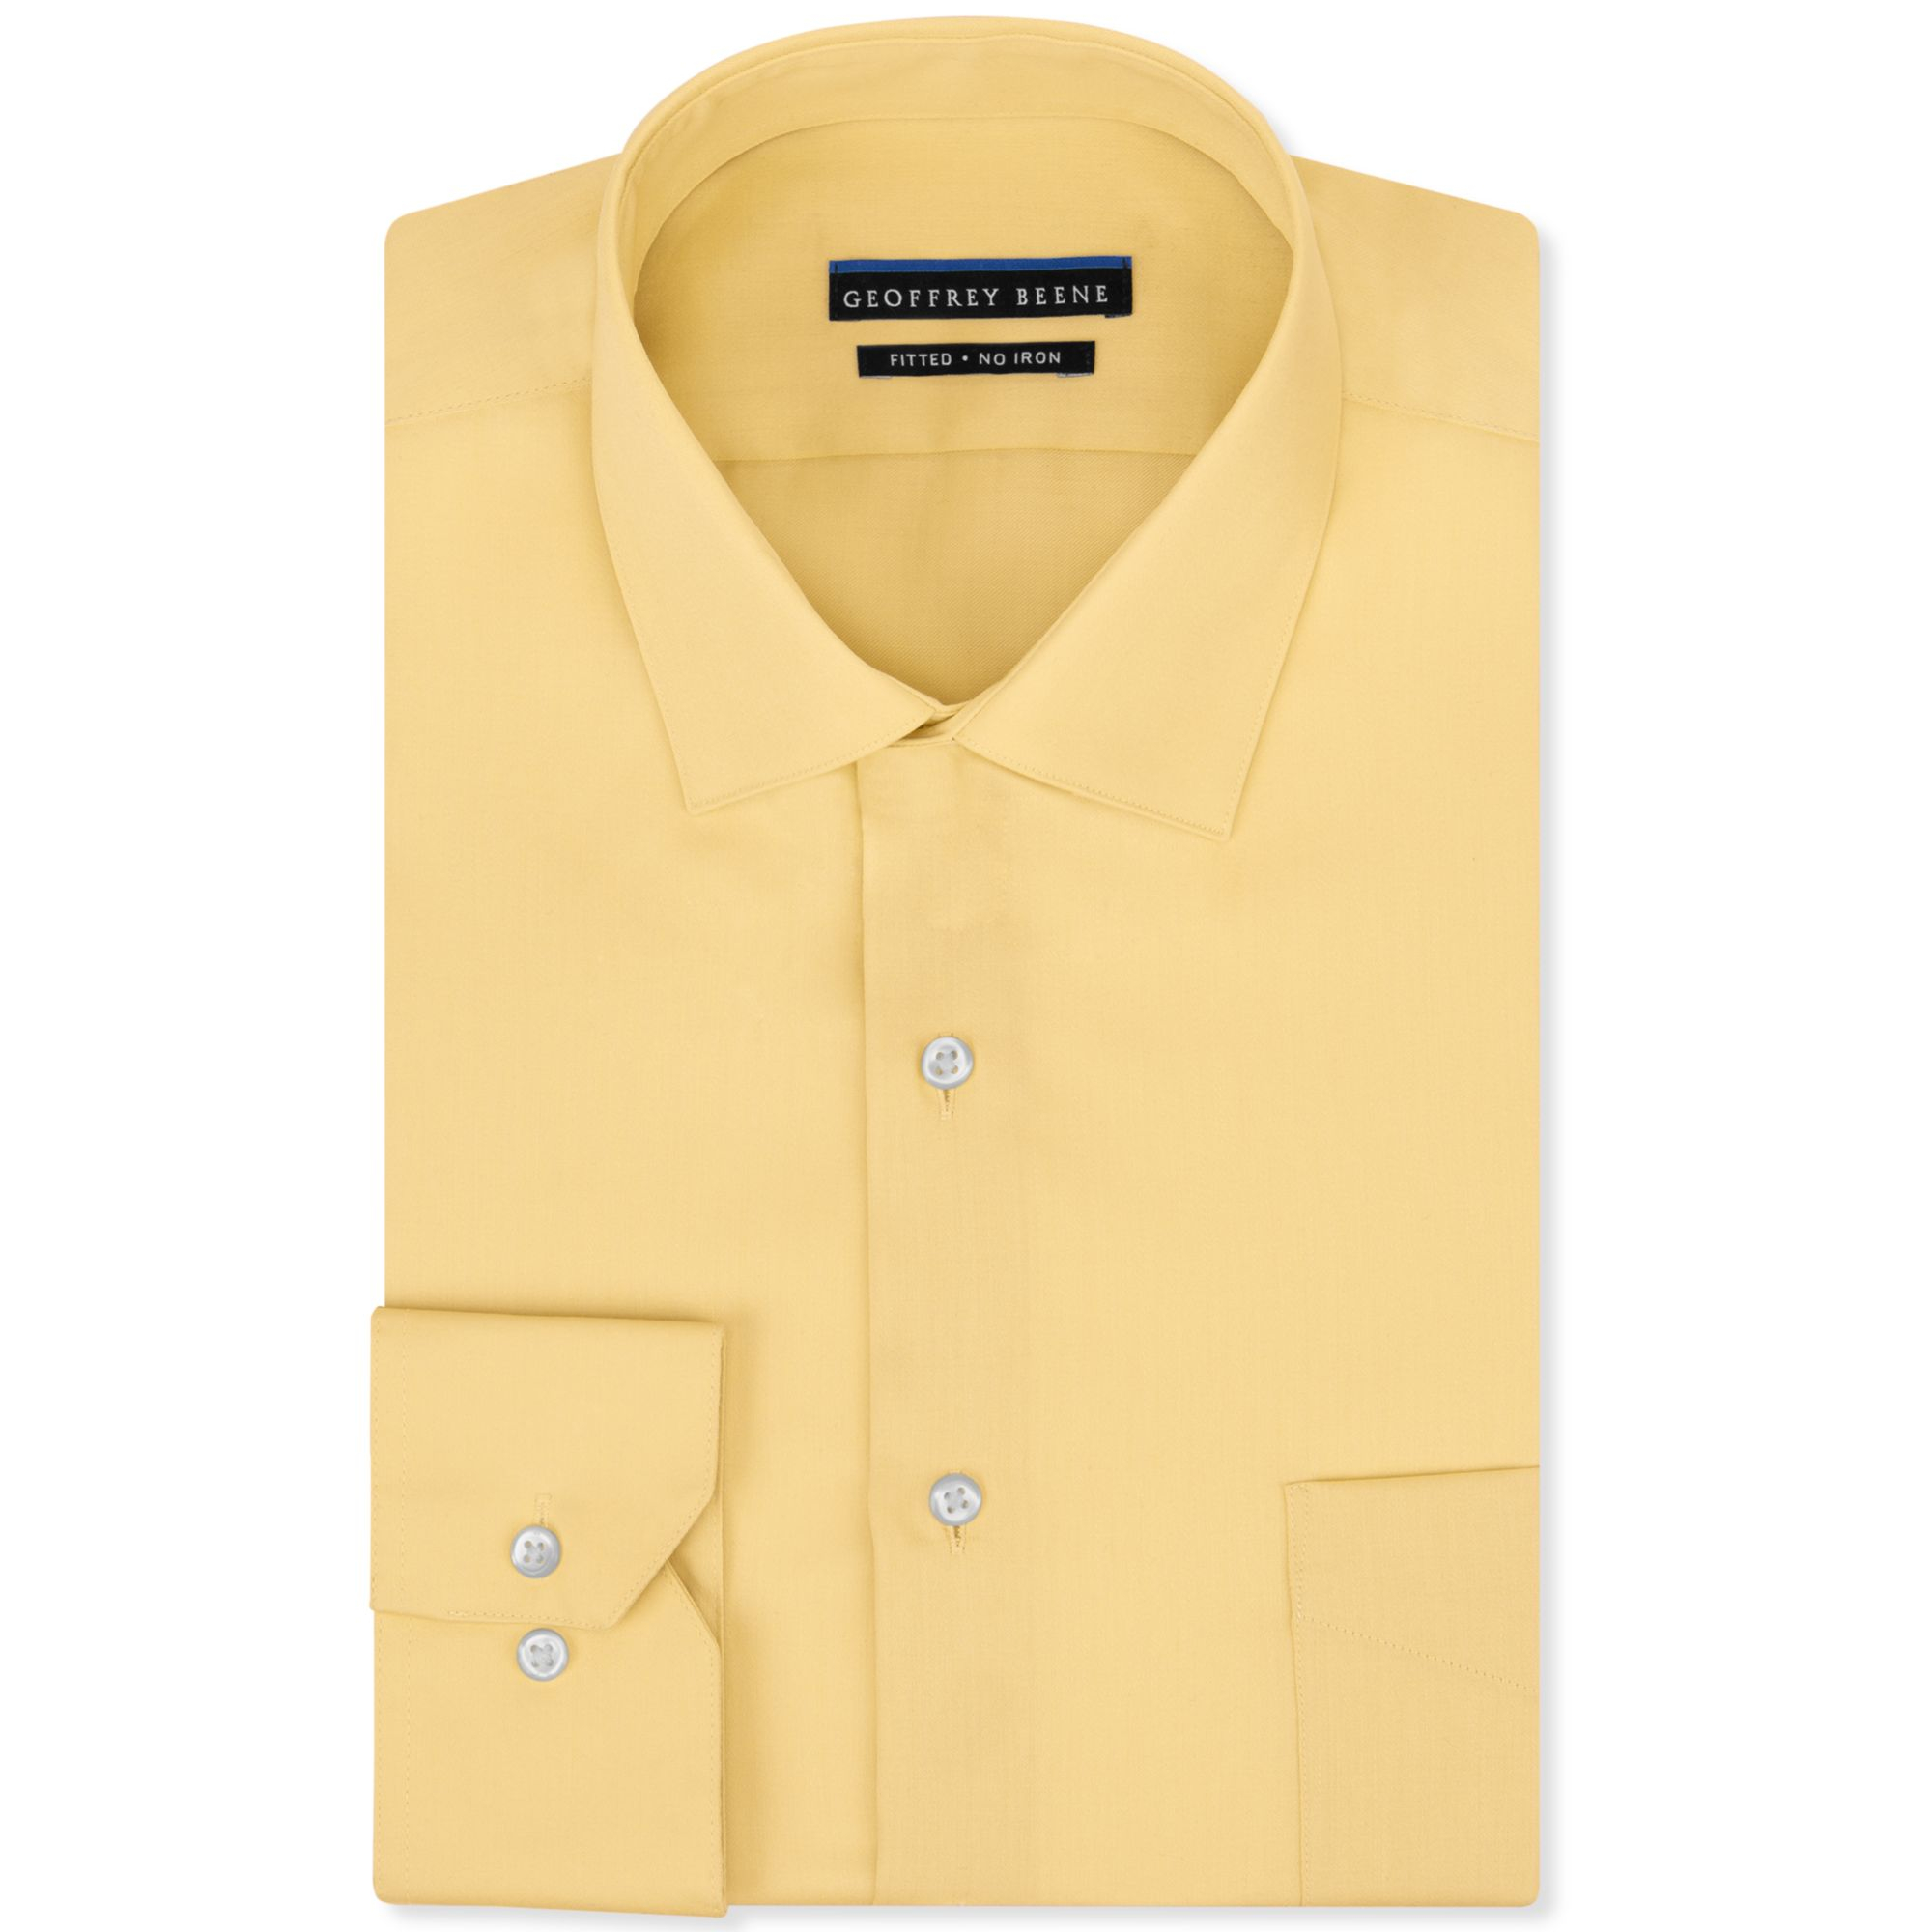 83bf362d8b2 Geoffrey Beene Men s Fitted Non-iron Stretch Sateen Dress Shirt in ...